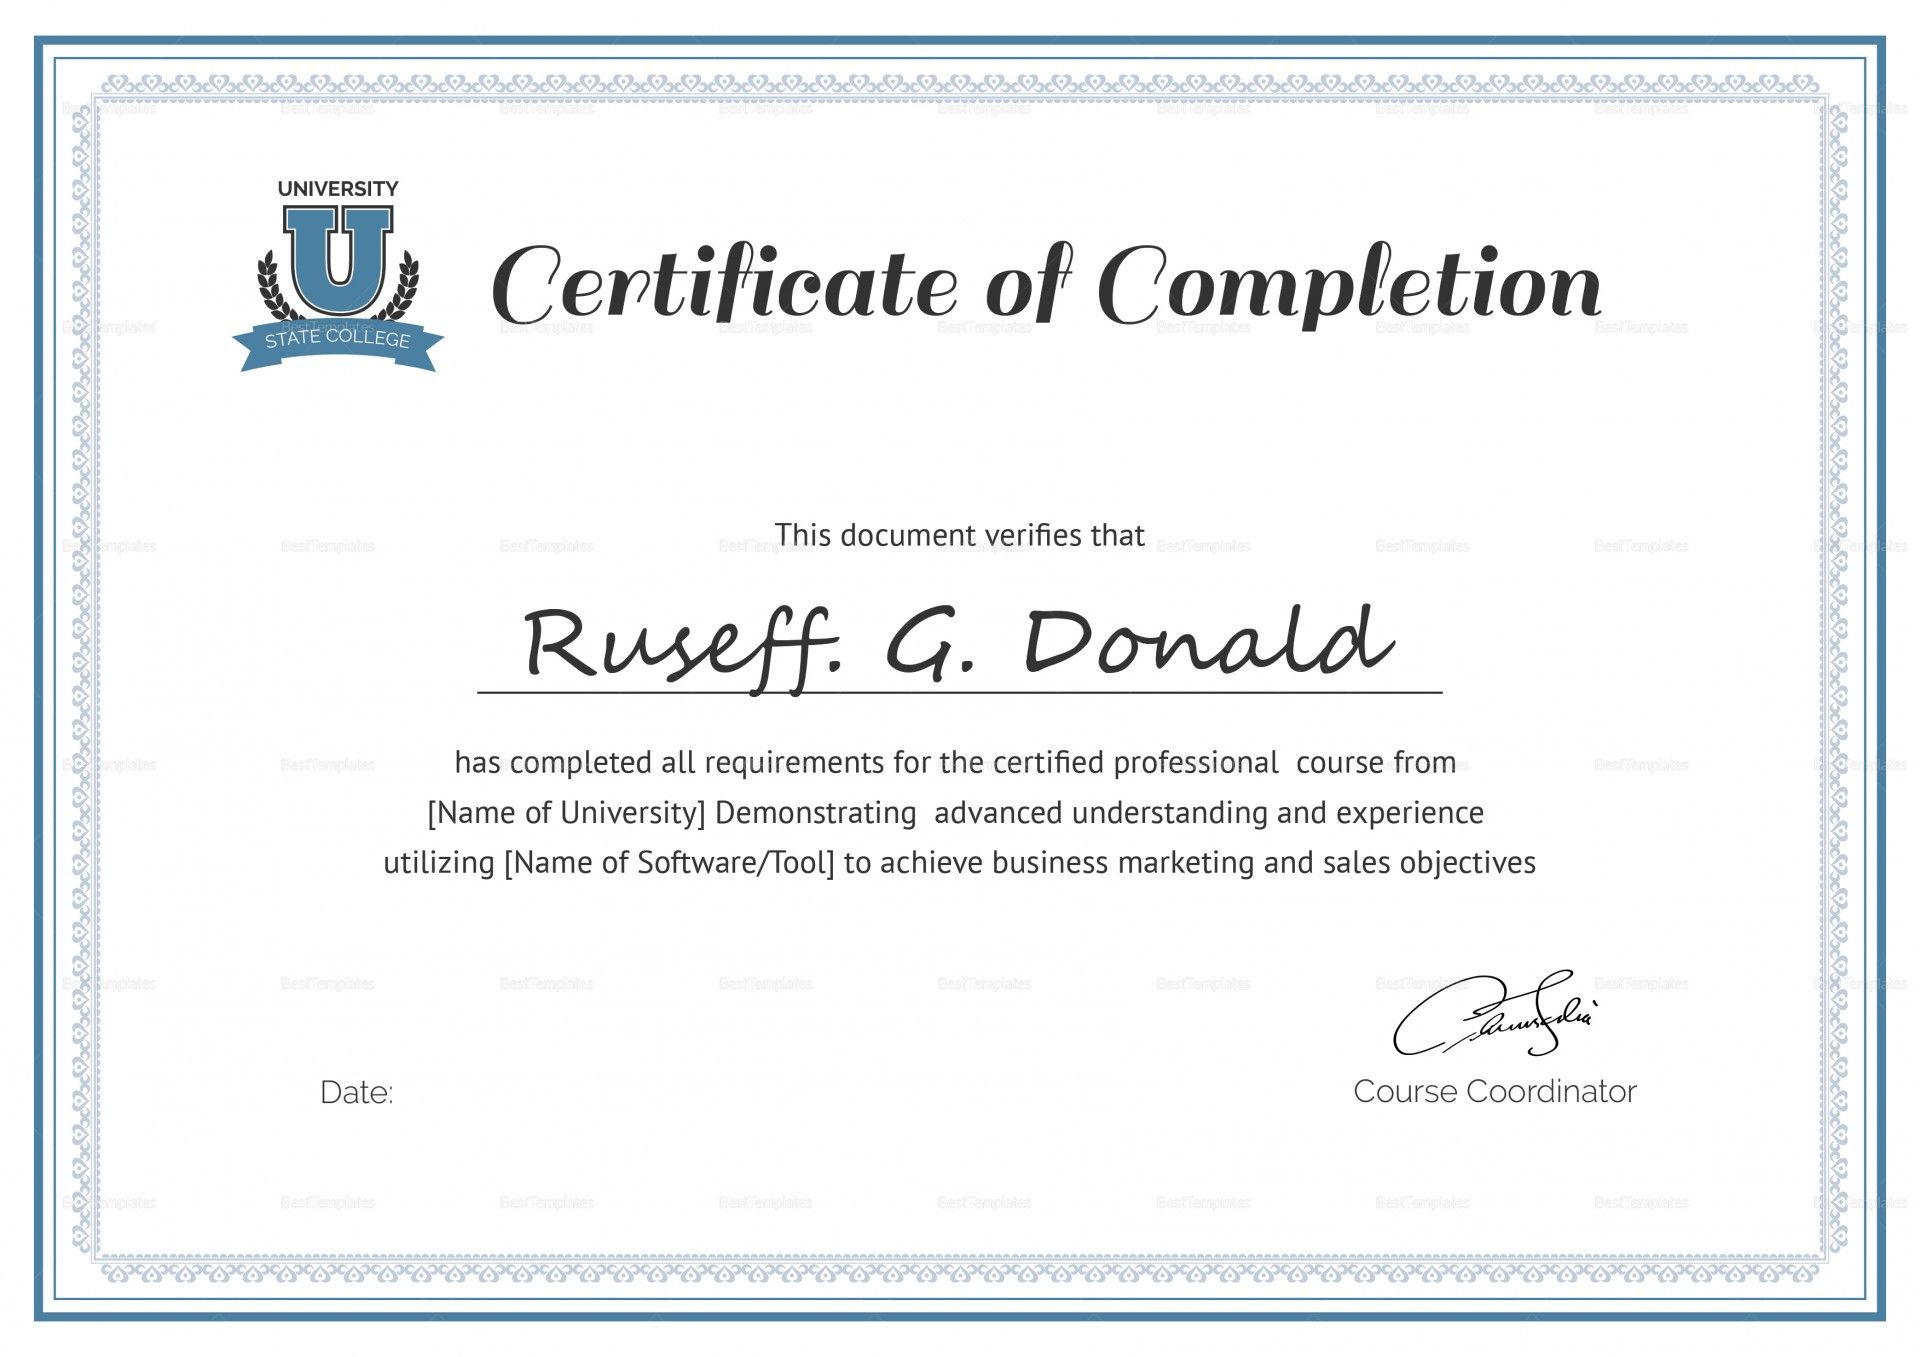 029 Make Up Course Completed Certificate Template Makeup Inside